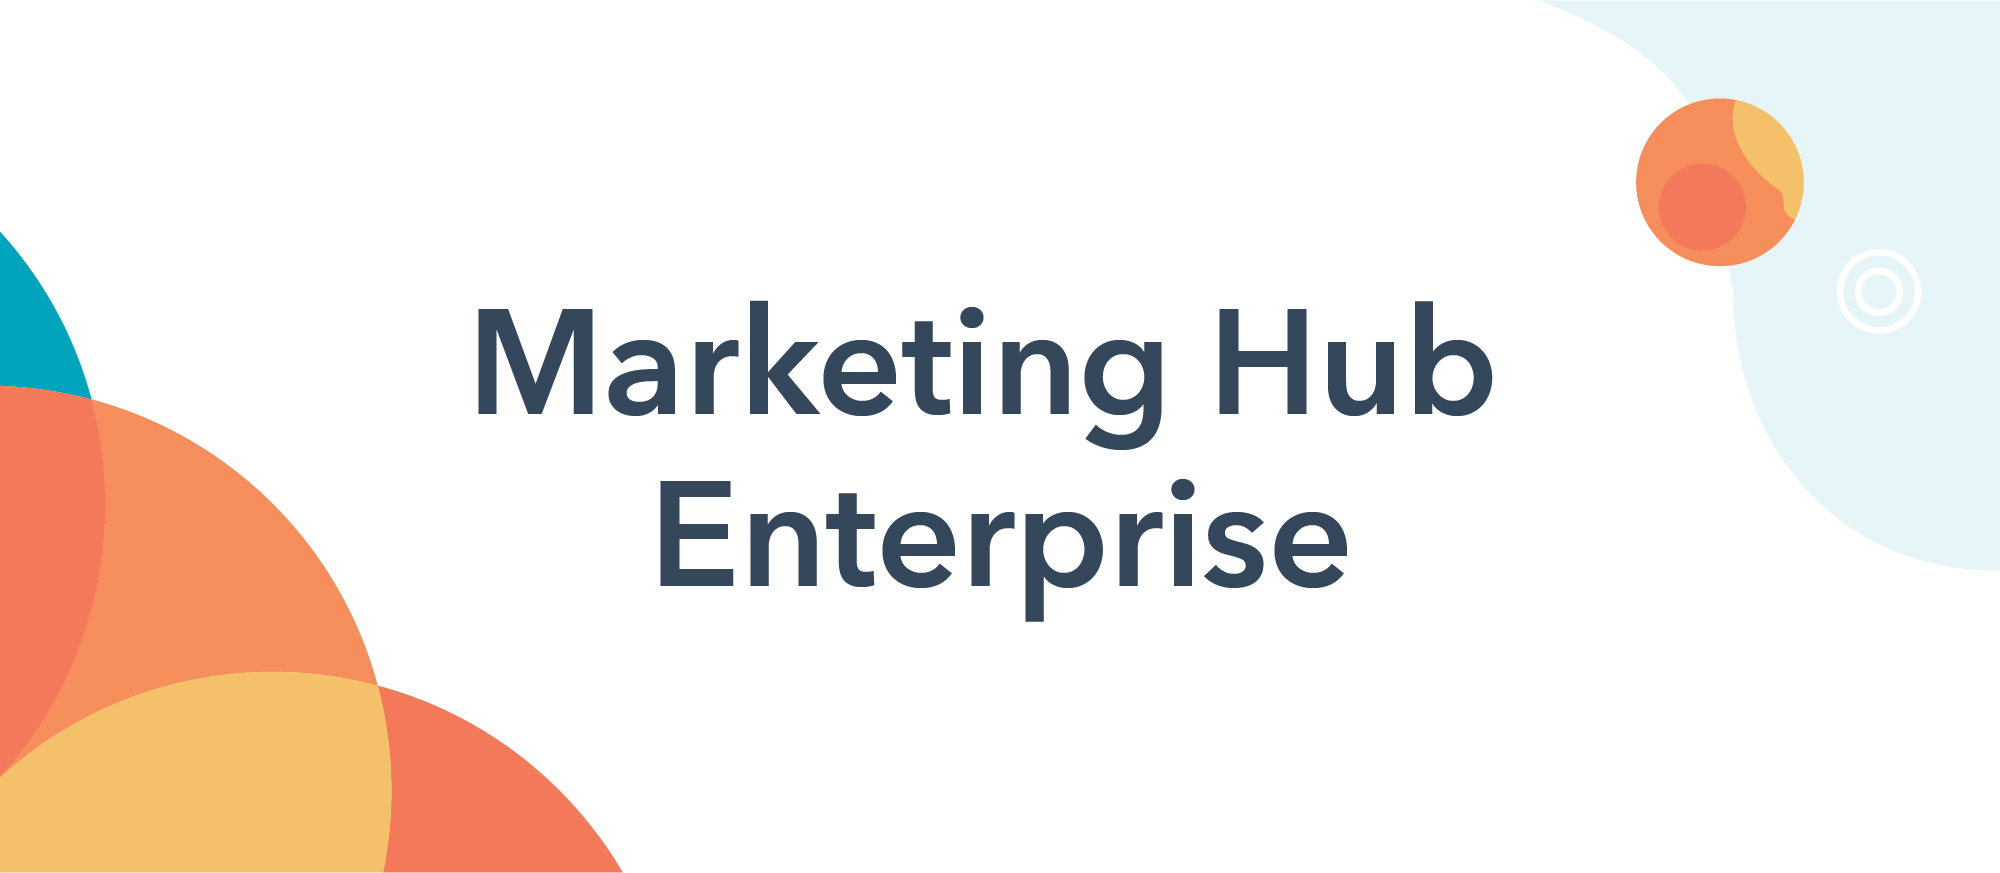 Ease-of-Use Enters the Enterprise: HubSpot Adds Powerful New Features to Marketing Hub Enterprise